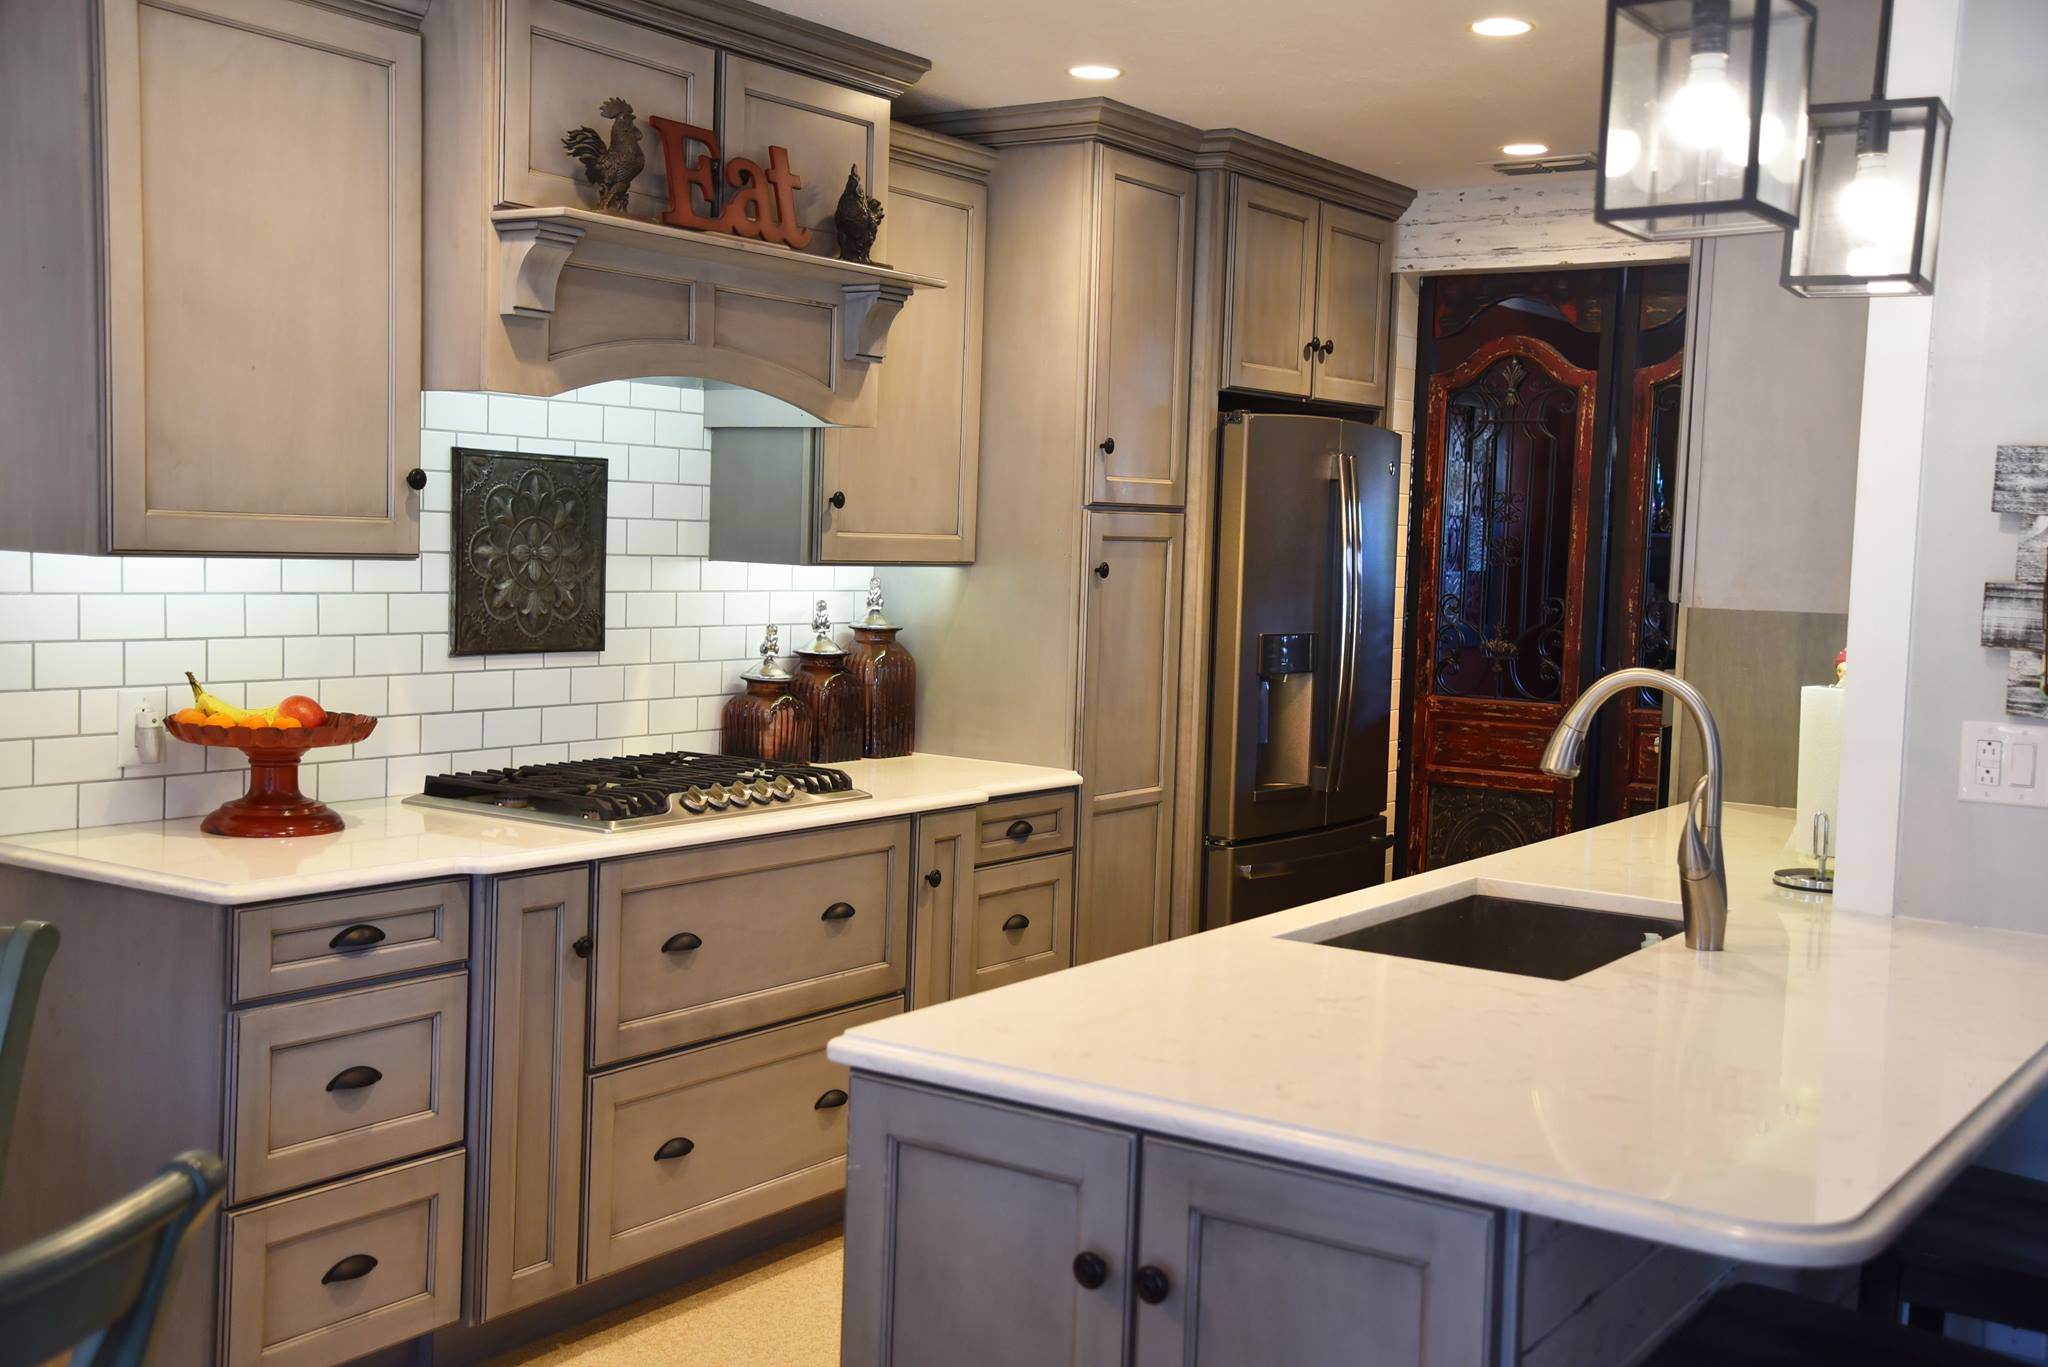 We supplied MidContinent Cabinetry: Ash with Black Glaze, Cambria Quartz Countertops: Style - Torquay, and a Soci Single Bowl Stainless Sink.